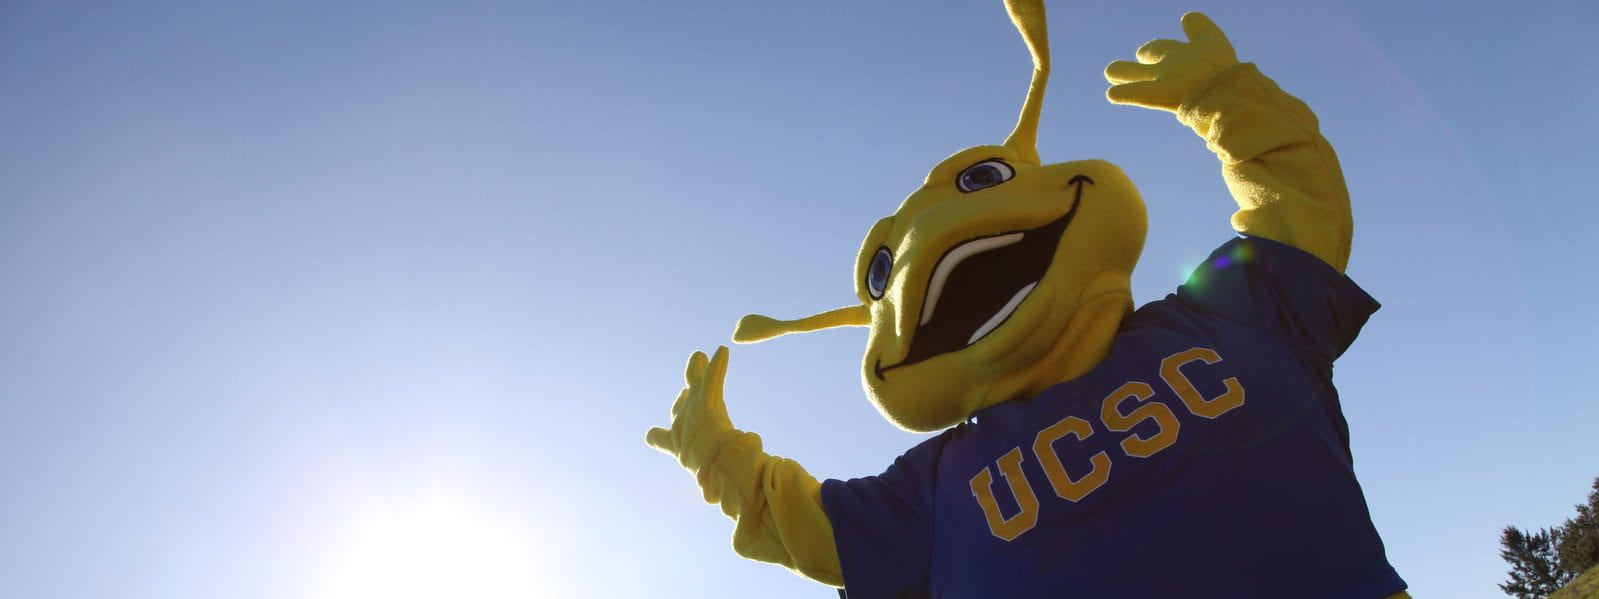 Sammy the Slug - UCSC Mascot